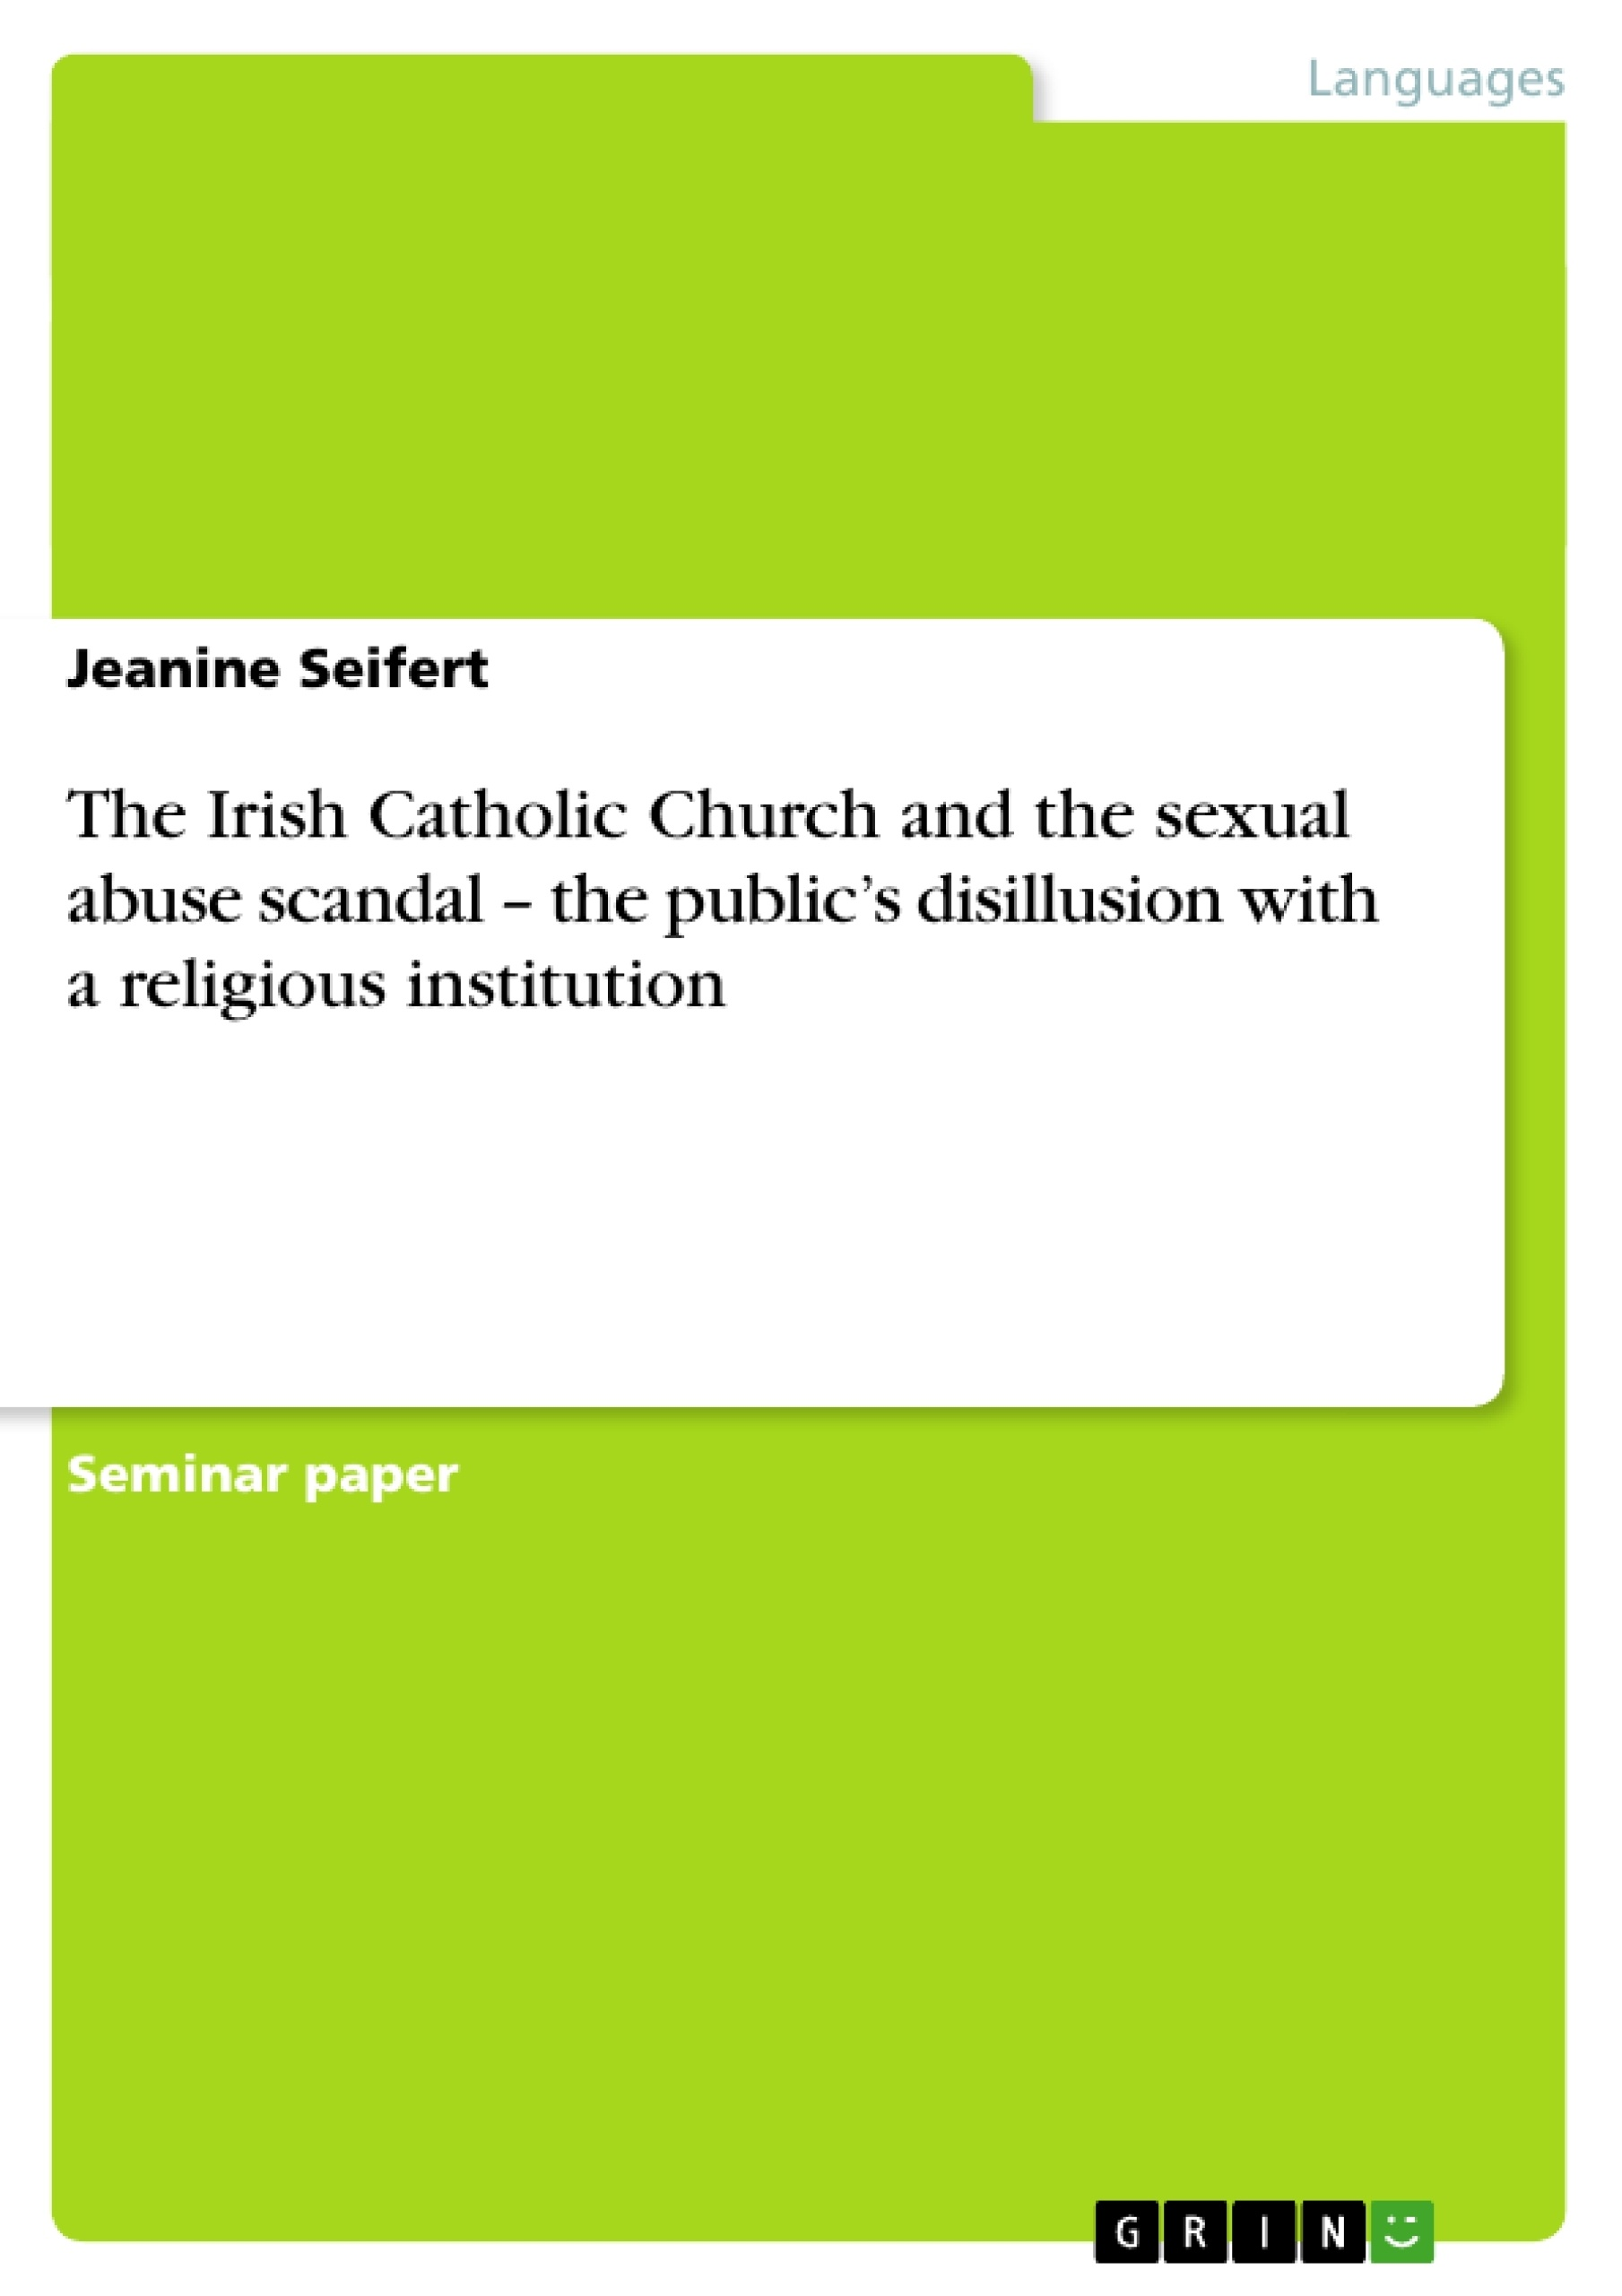 Title: The Irish Catholic Church and the sexual abuse scandal – the public's disillusion with a religious institution